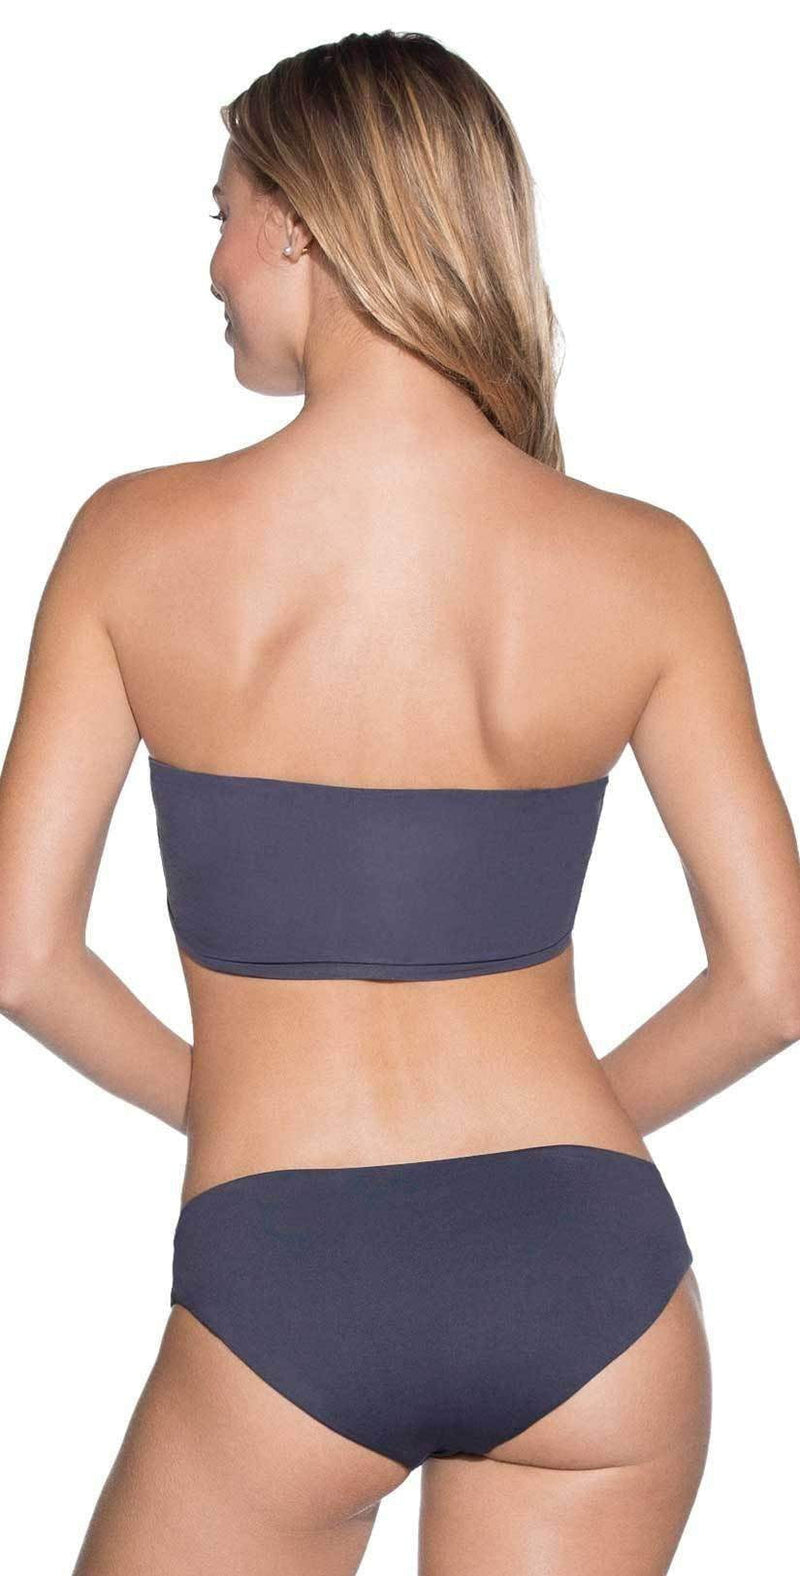 Maaji Moonless Night Bandeau Top 3055SBA01: